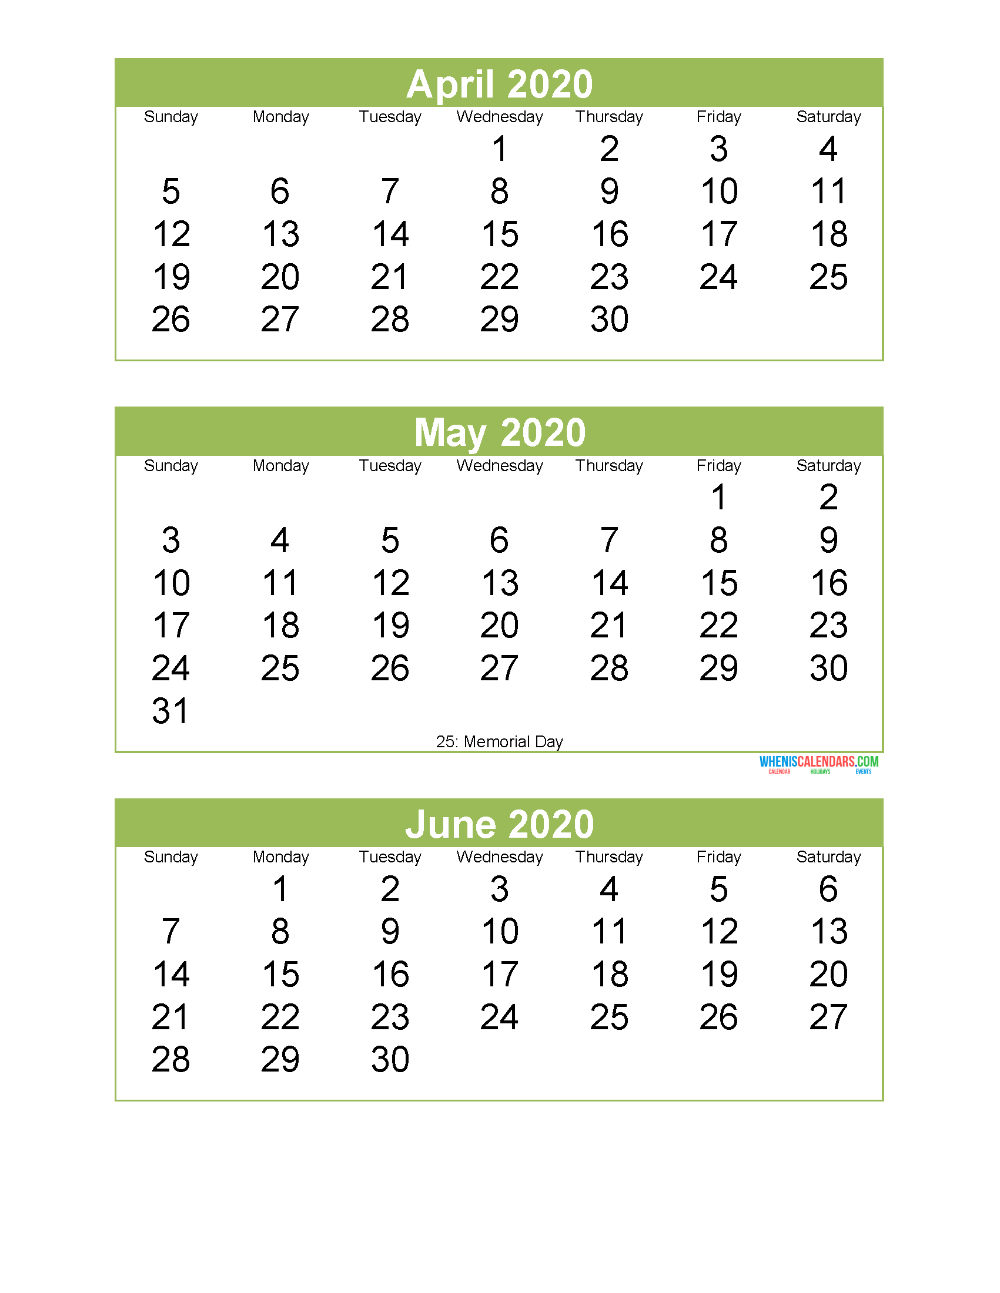 Free Printable 3 Month Calendar 2020 April May June Free Printable 2020 Calendar Templates Calendar Template Calendar Printables 3 Month Calendar